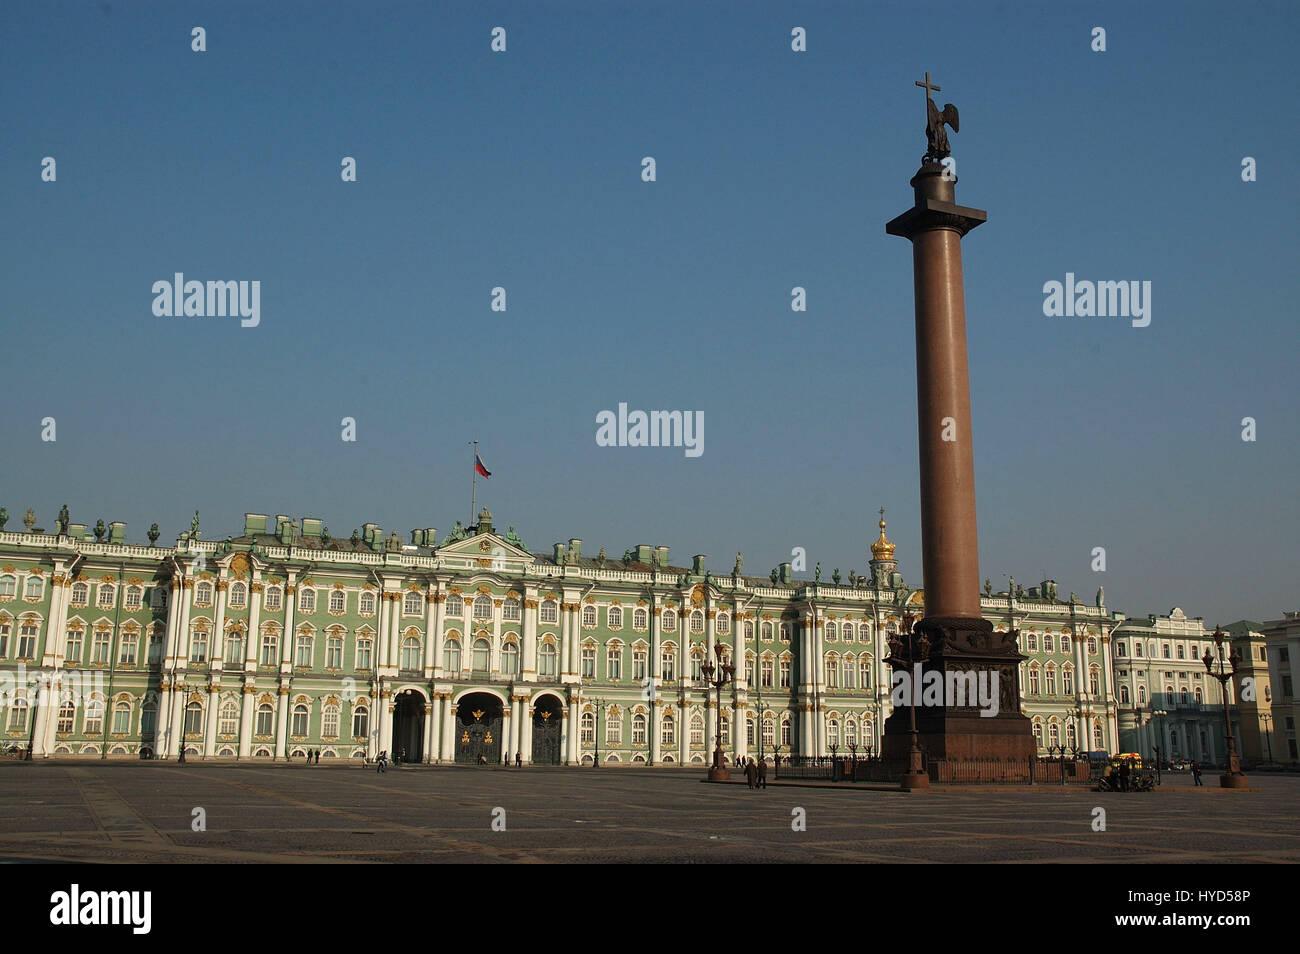 The State Hermitage Museum, Sankt-Peterburg, Russia Stock Photo